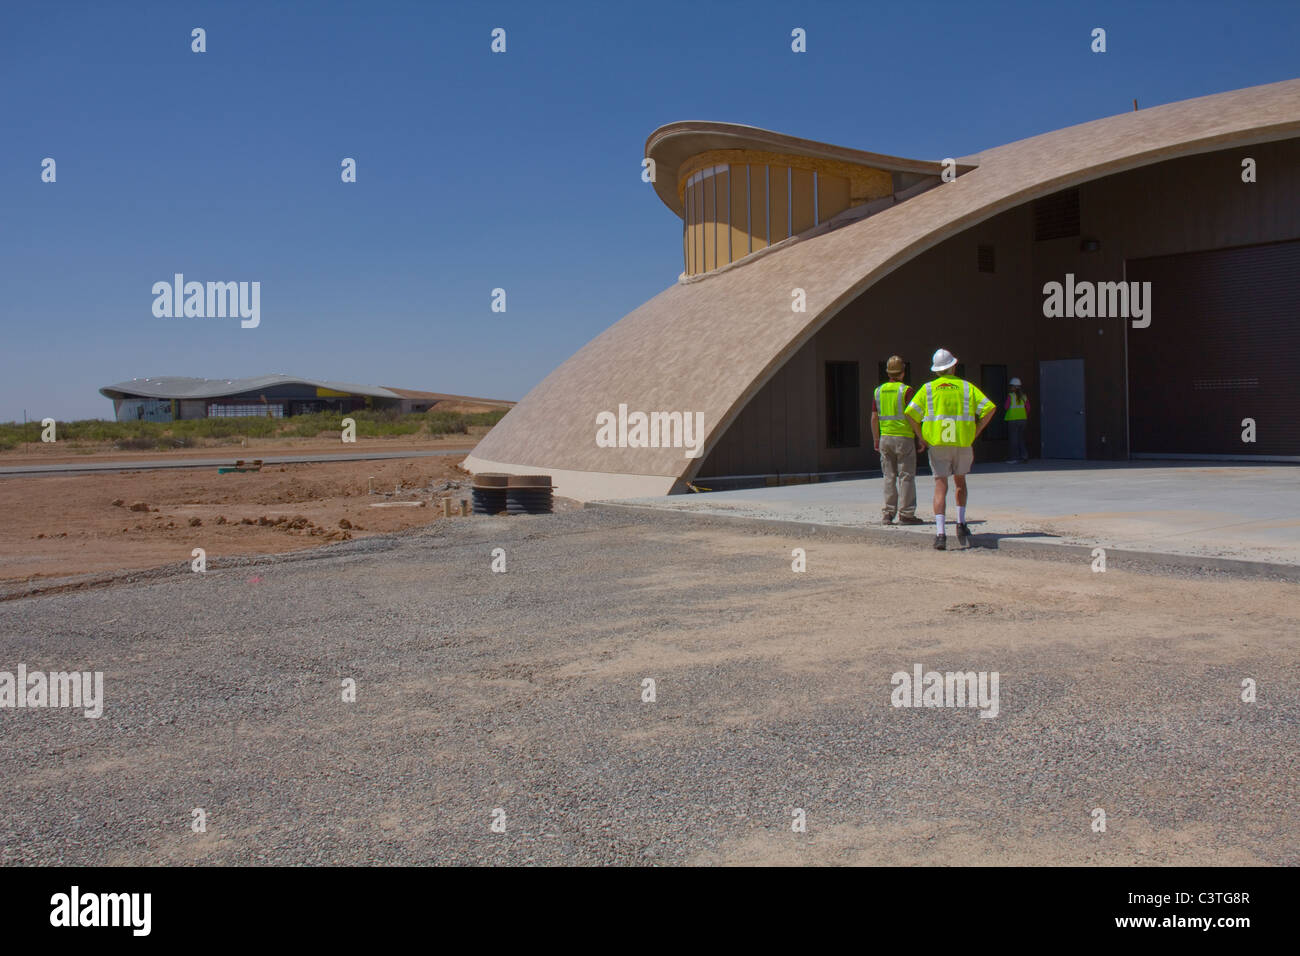 Aircraft Rescue Fire Fighting Facility (ARFF), Spaceport America, near Truth or Consequences, NM - Stock Image